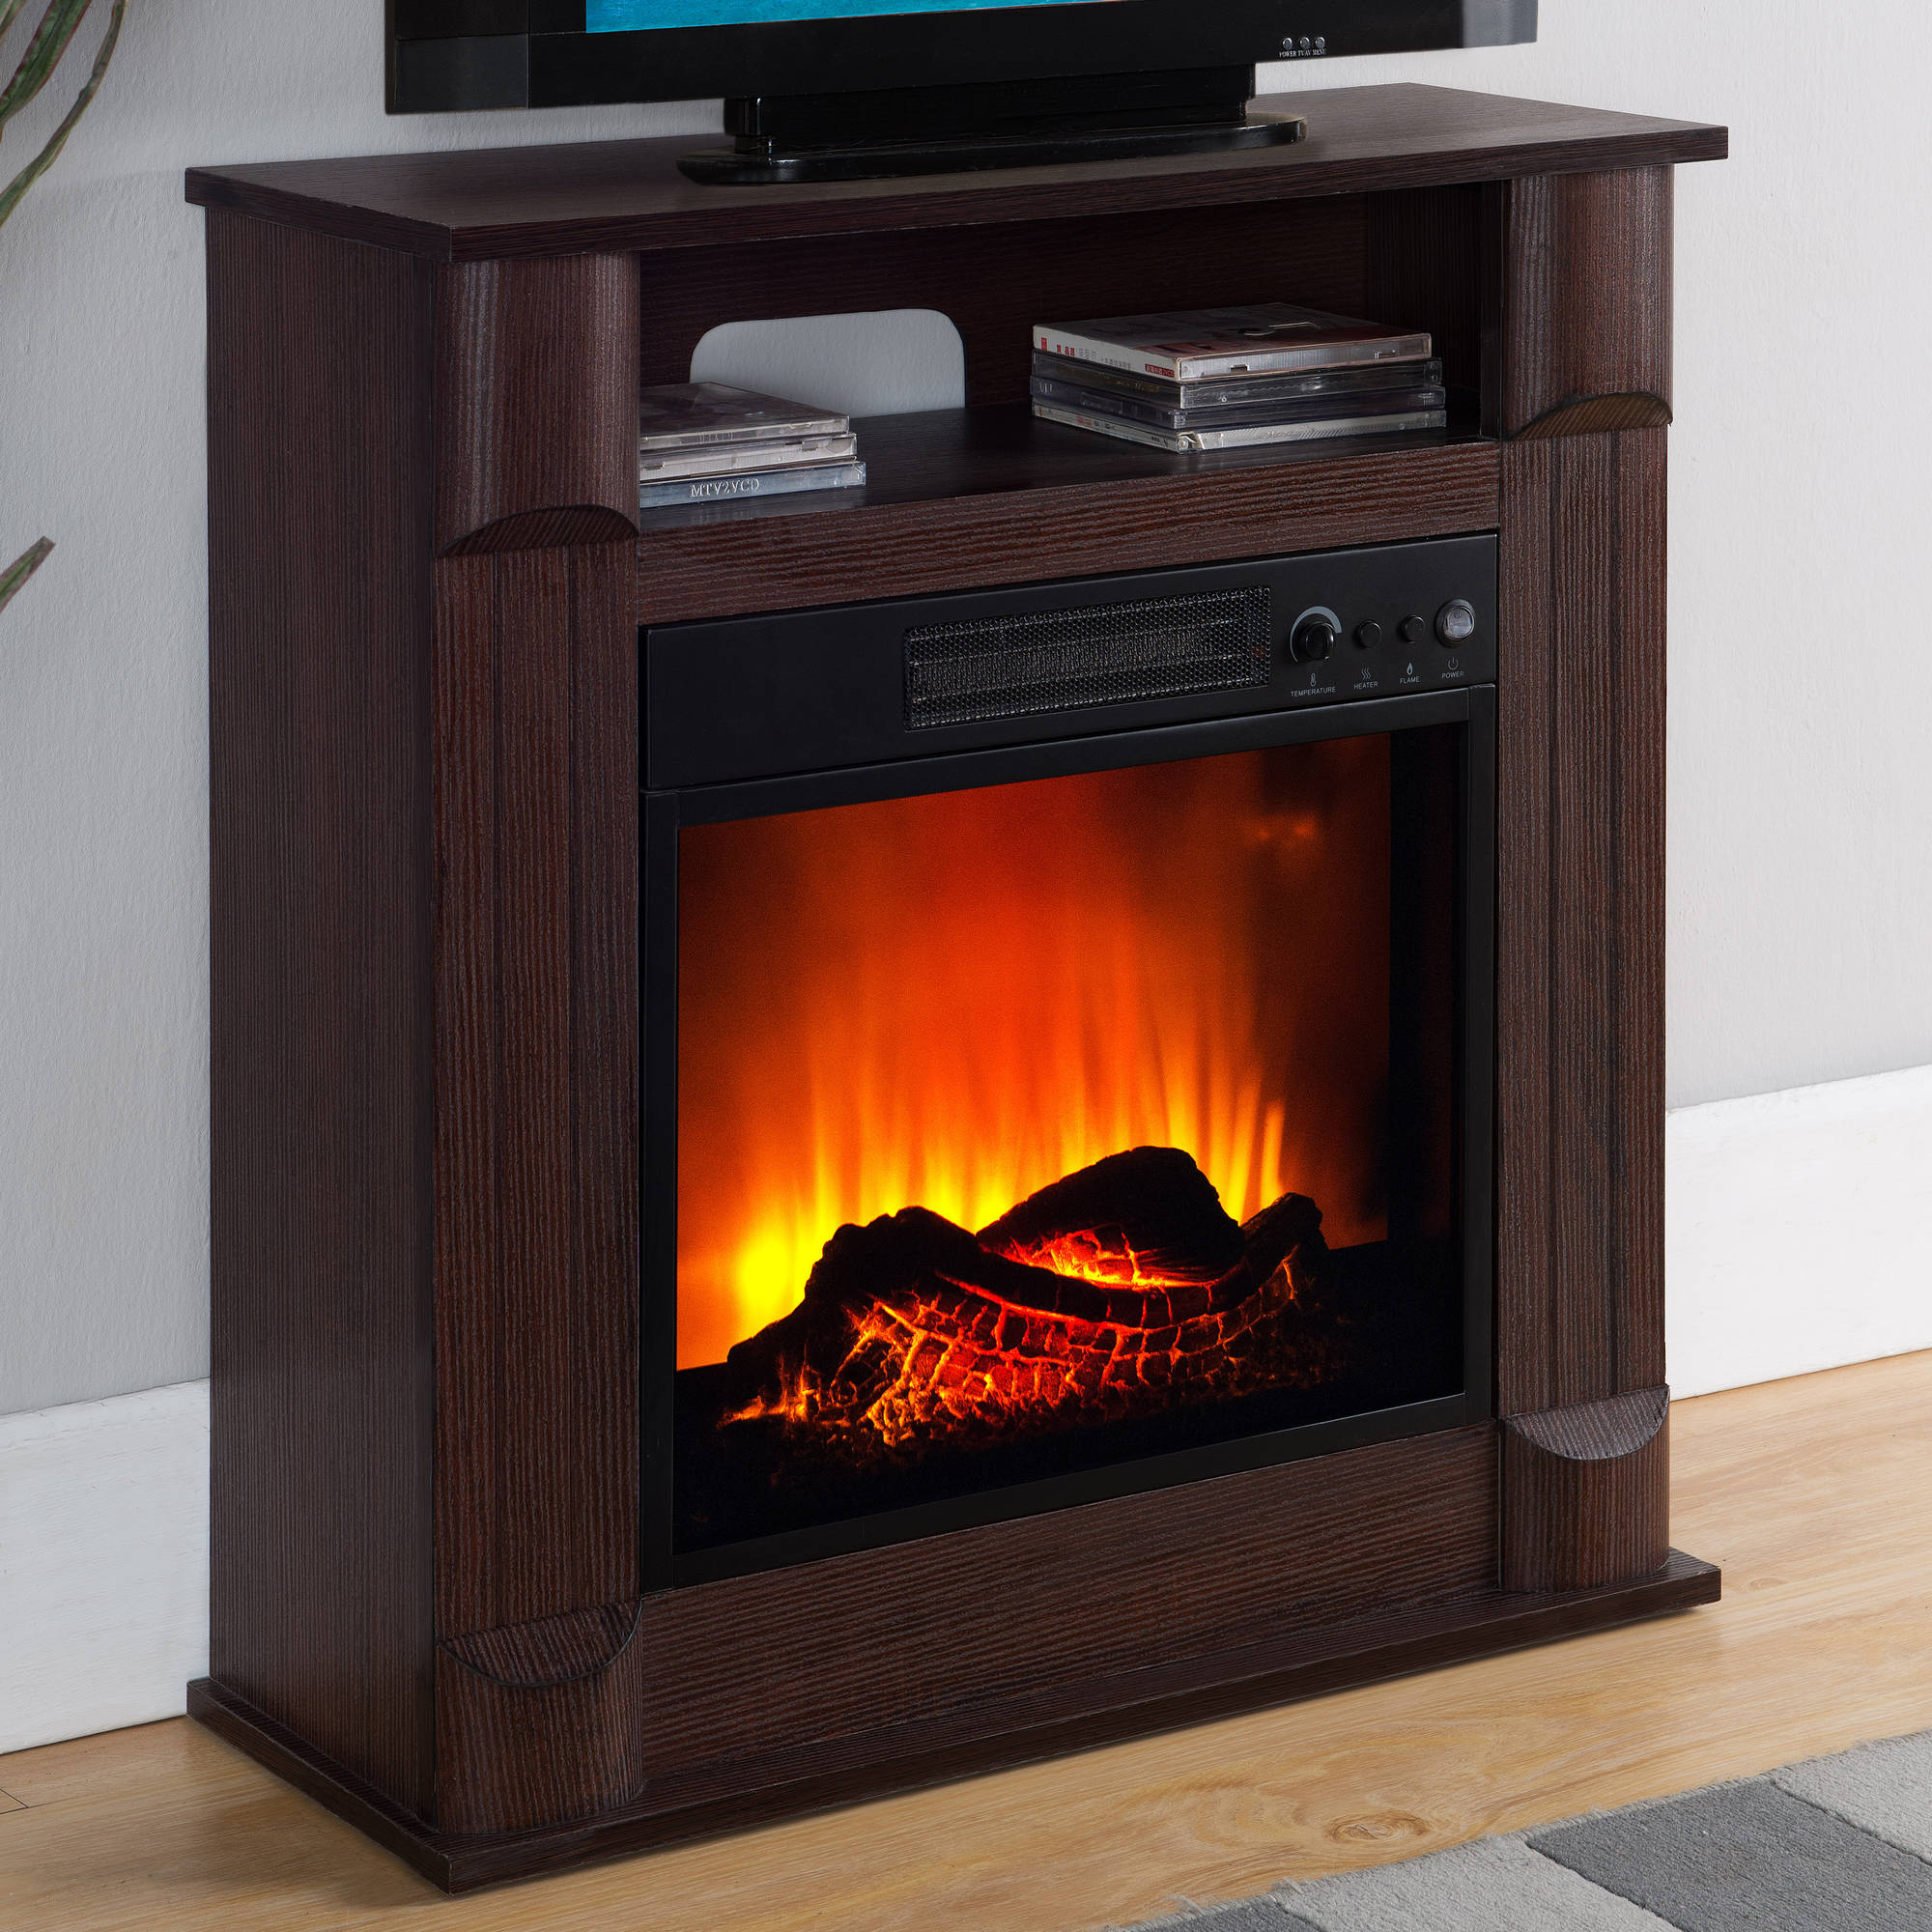 Electric Fireplaces For Sale At Walmart Prokonian Electric Fireplace With 26